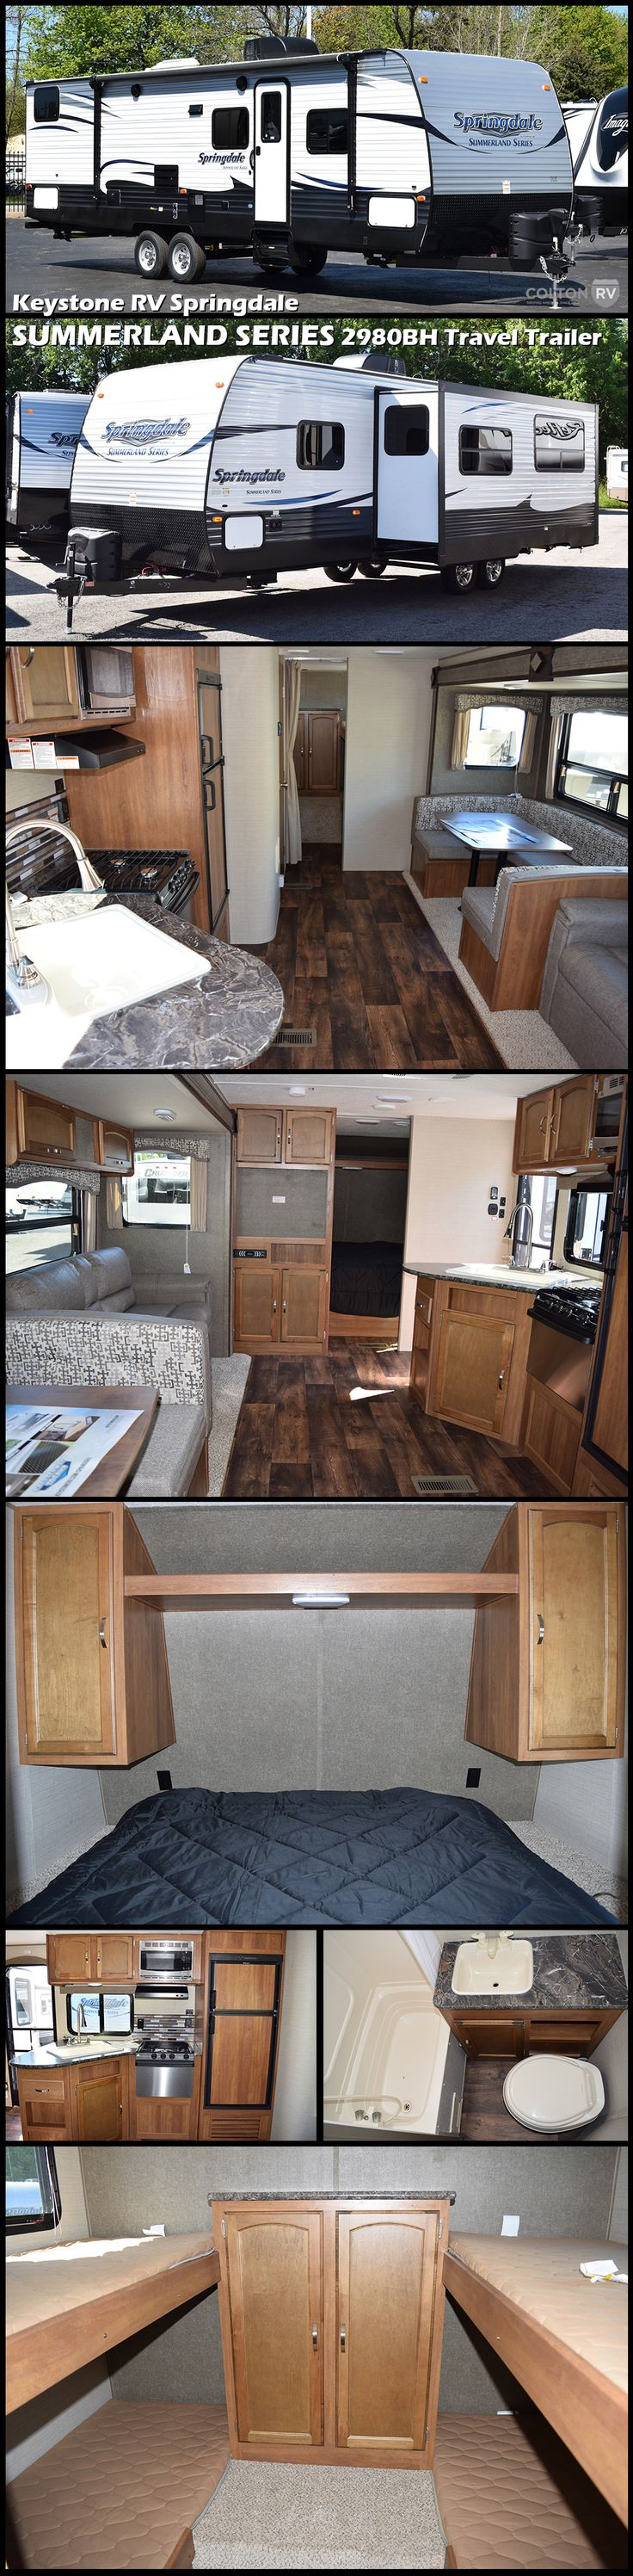 2017 KEYSTONE RV SPRINGDALE SUMMERLAND SERIES 2980BH Travel Trailer. Vacation is the dream we carry with us throughout the year. It is the escape from our day to day cares and a place where we connect with those we love. Vacation is not just a location; it is a state of mind. When you are ready for vacation, Summerland takes you there.